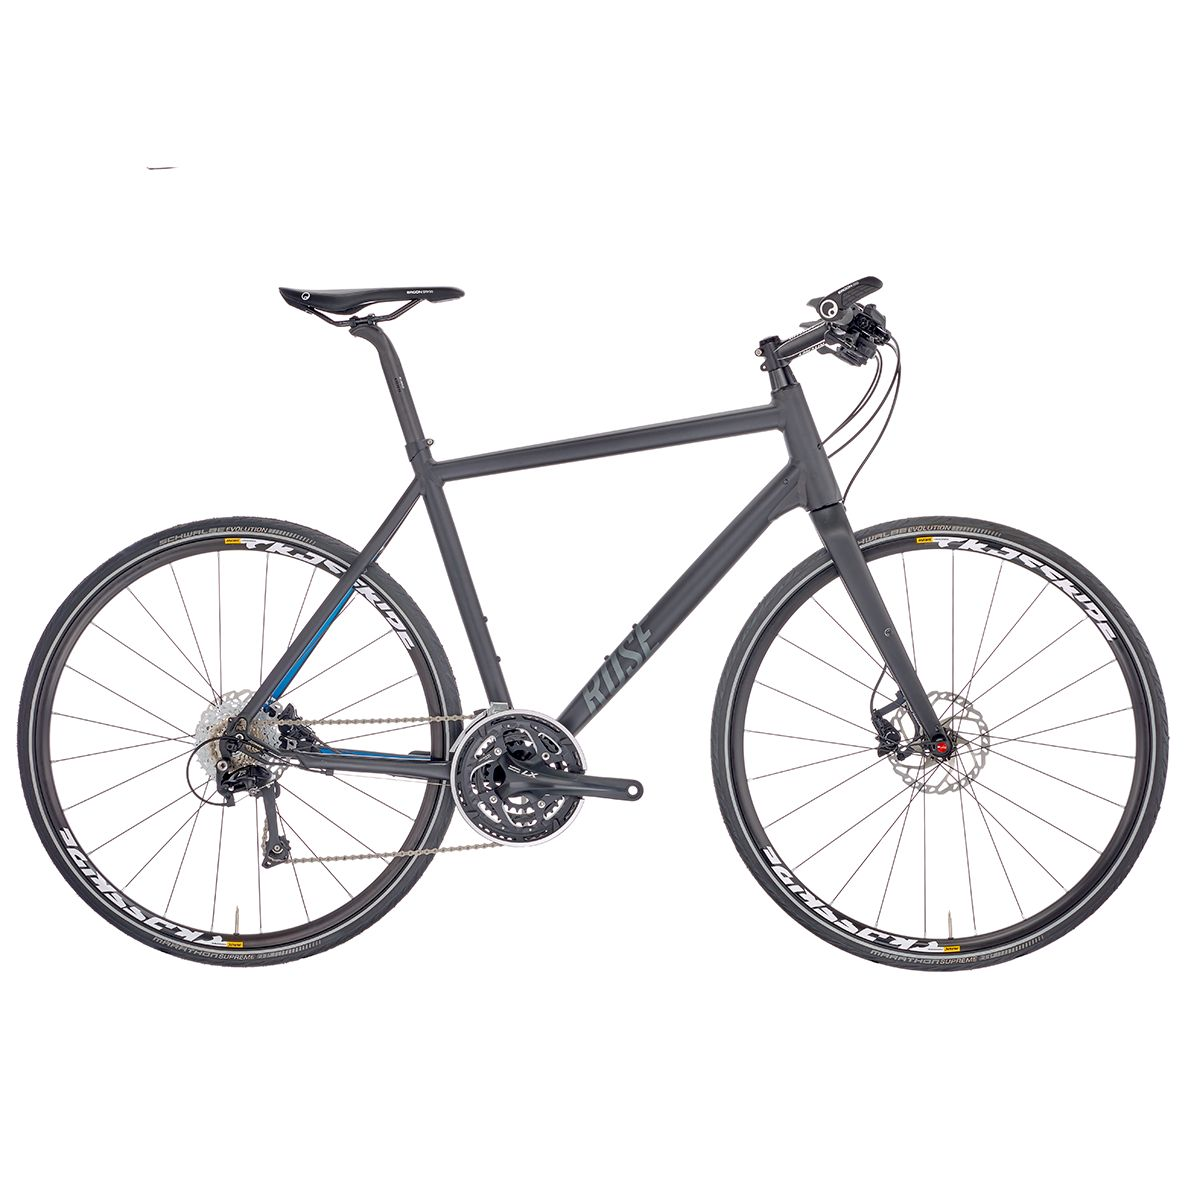 ROSE MULTISTREET 300 MEN showroom bike | item_misc